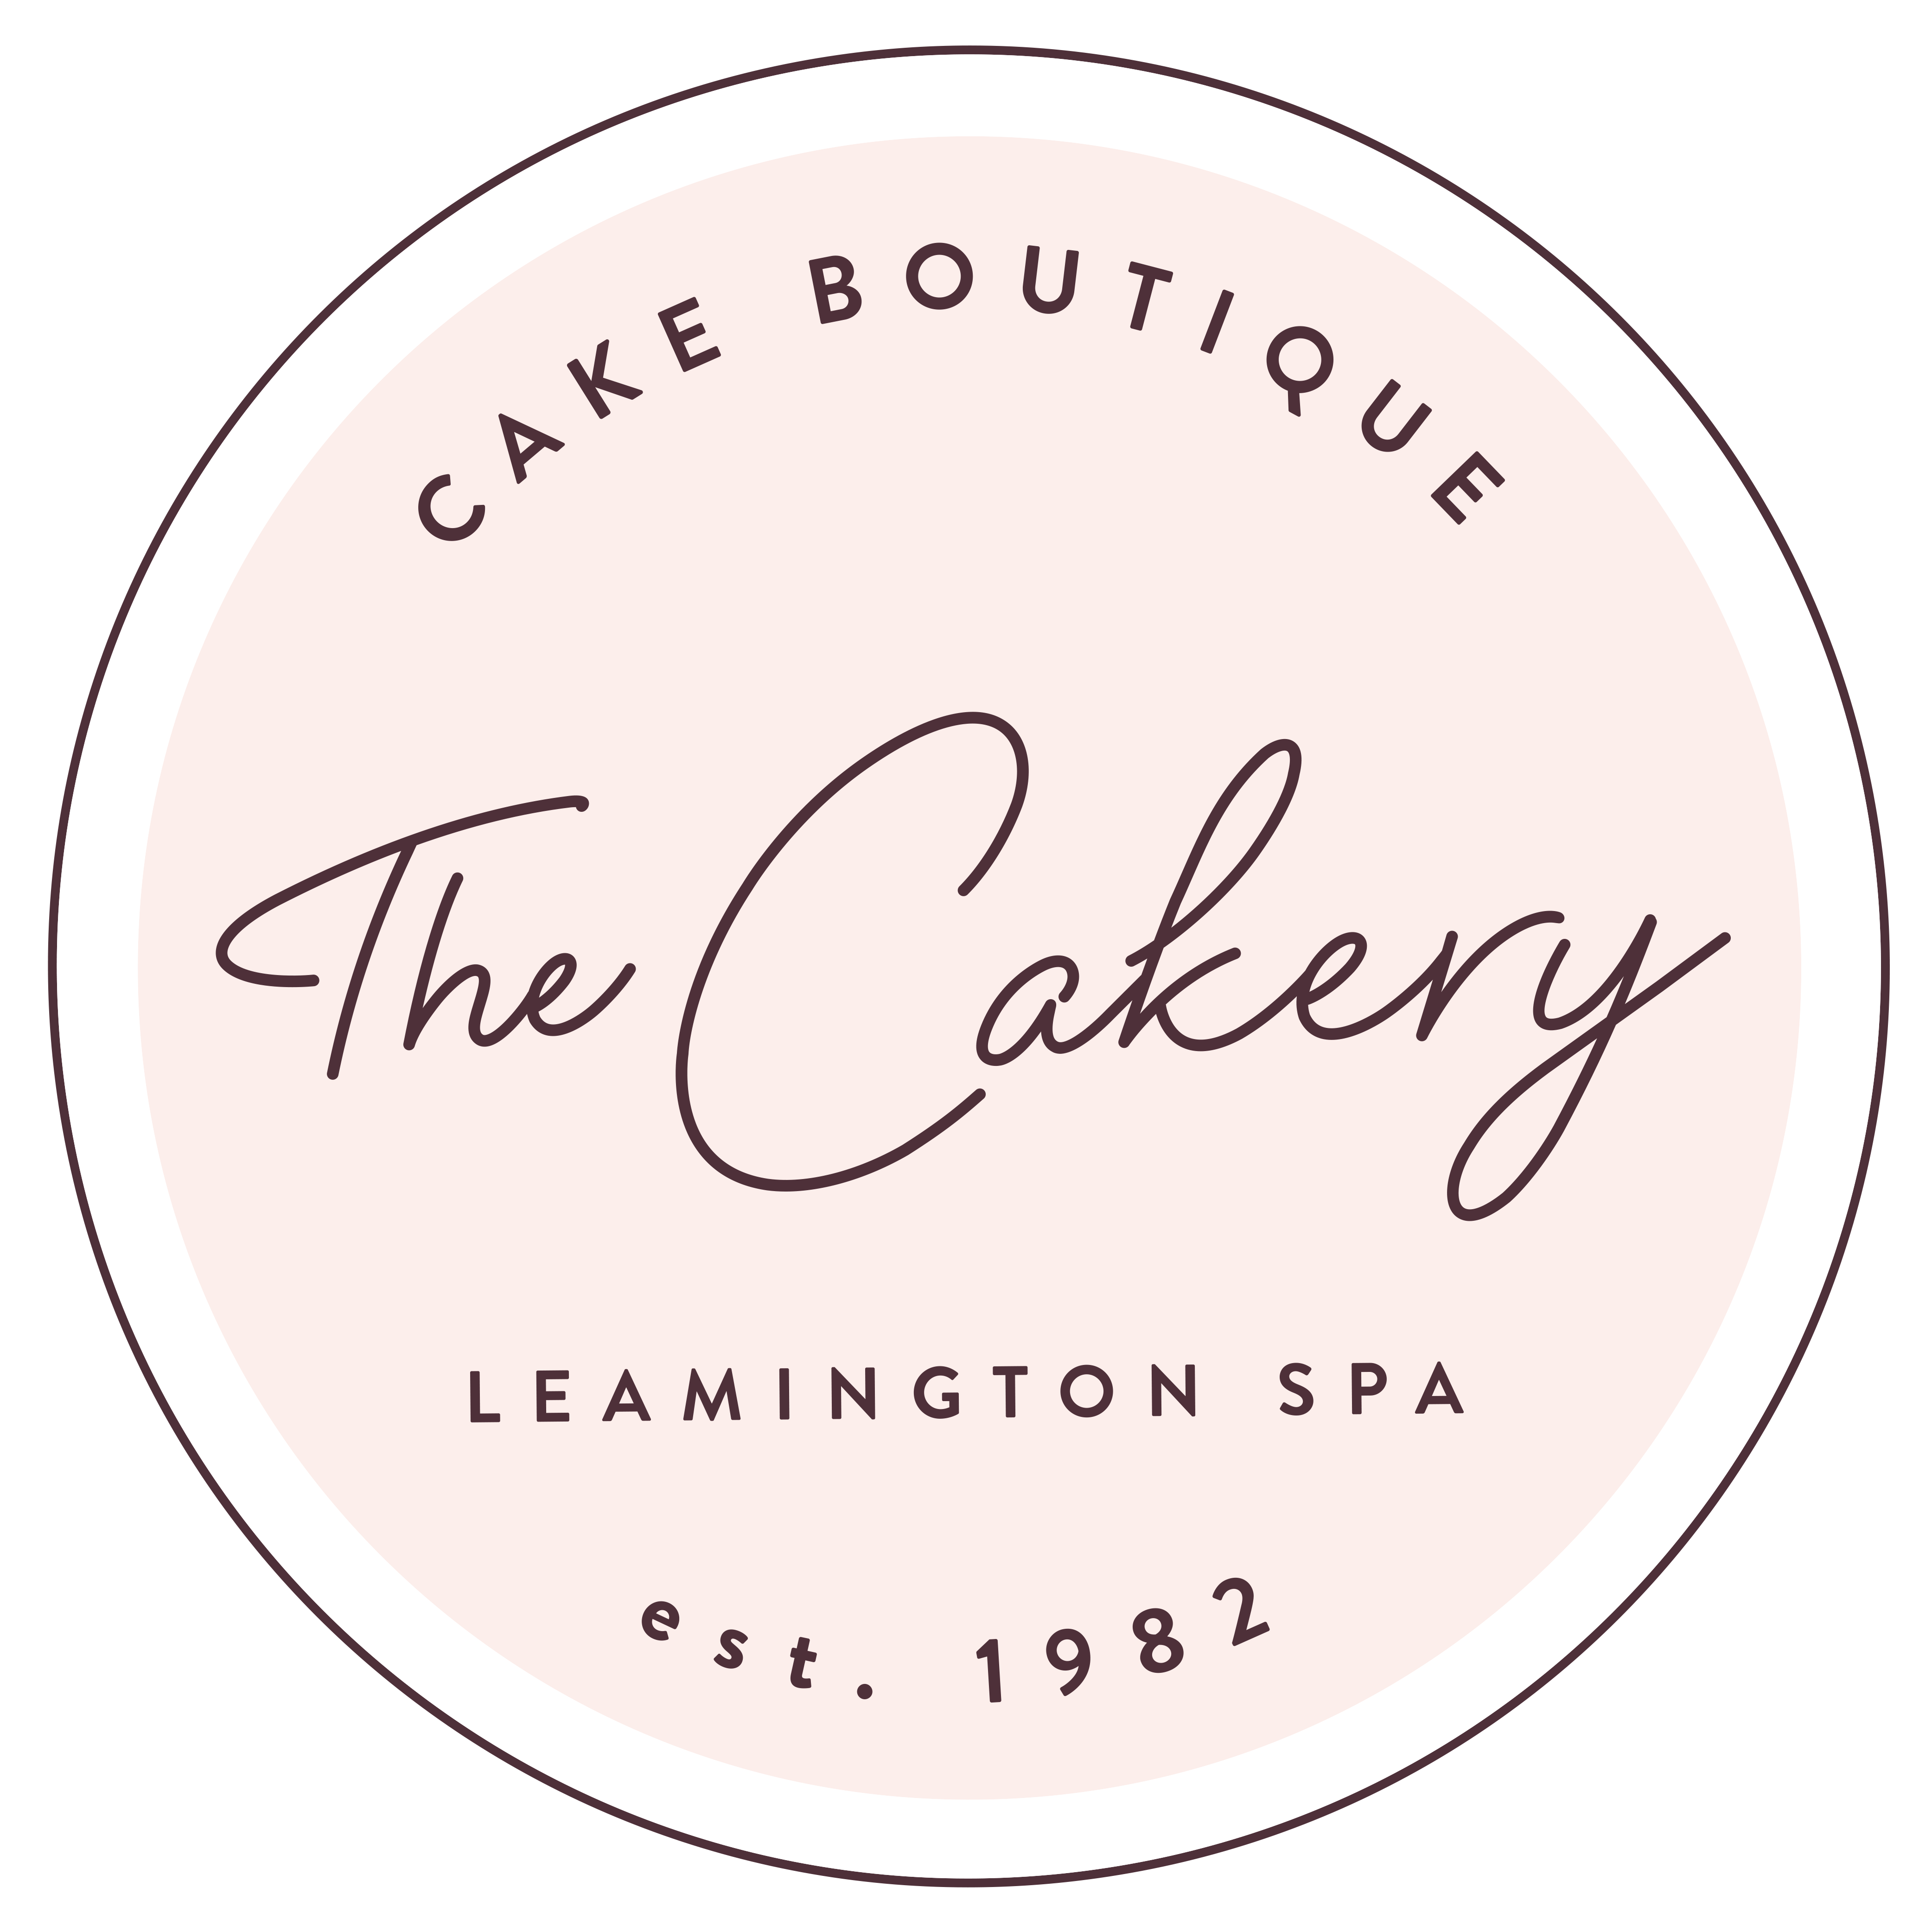 The Cakery Leamington Logo